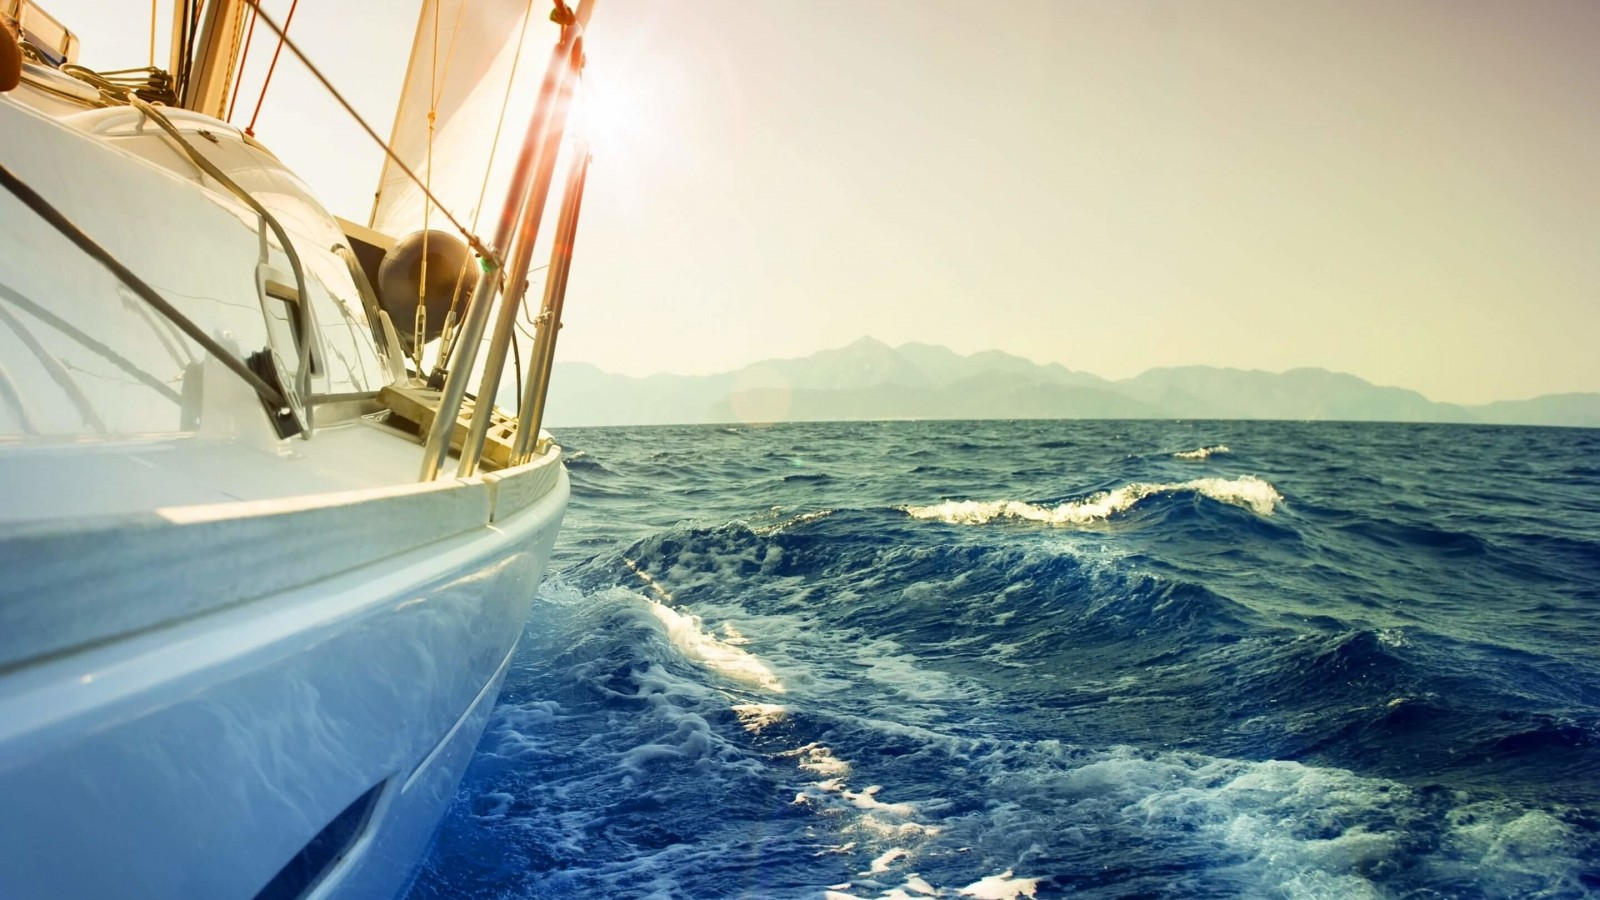 Yacht Sailing Downwind at Sunset Wallpaper for Desktop 1600x900